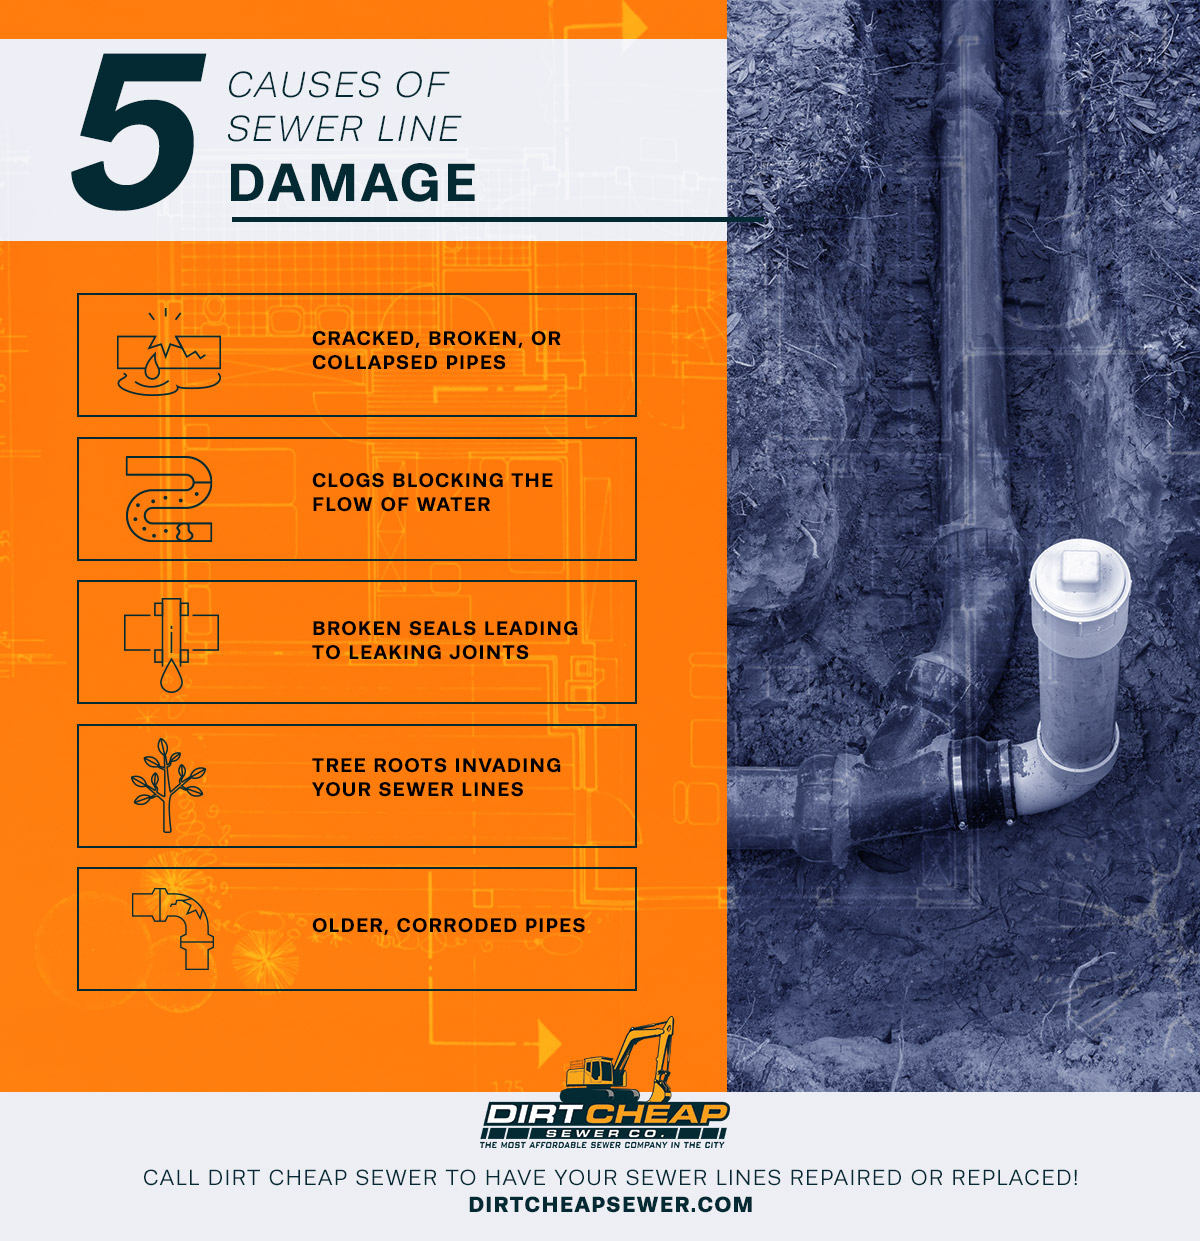 5 Causes of Sewer Line Damage.jpg